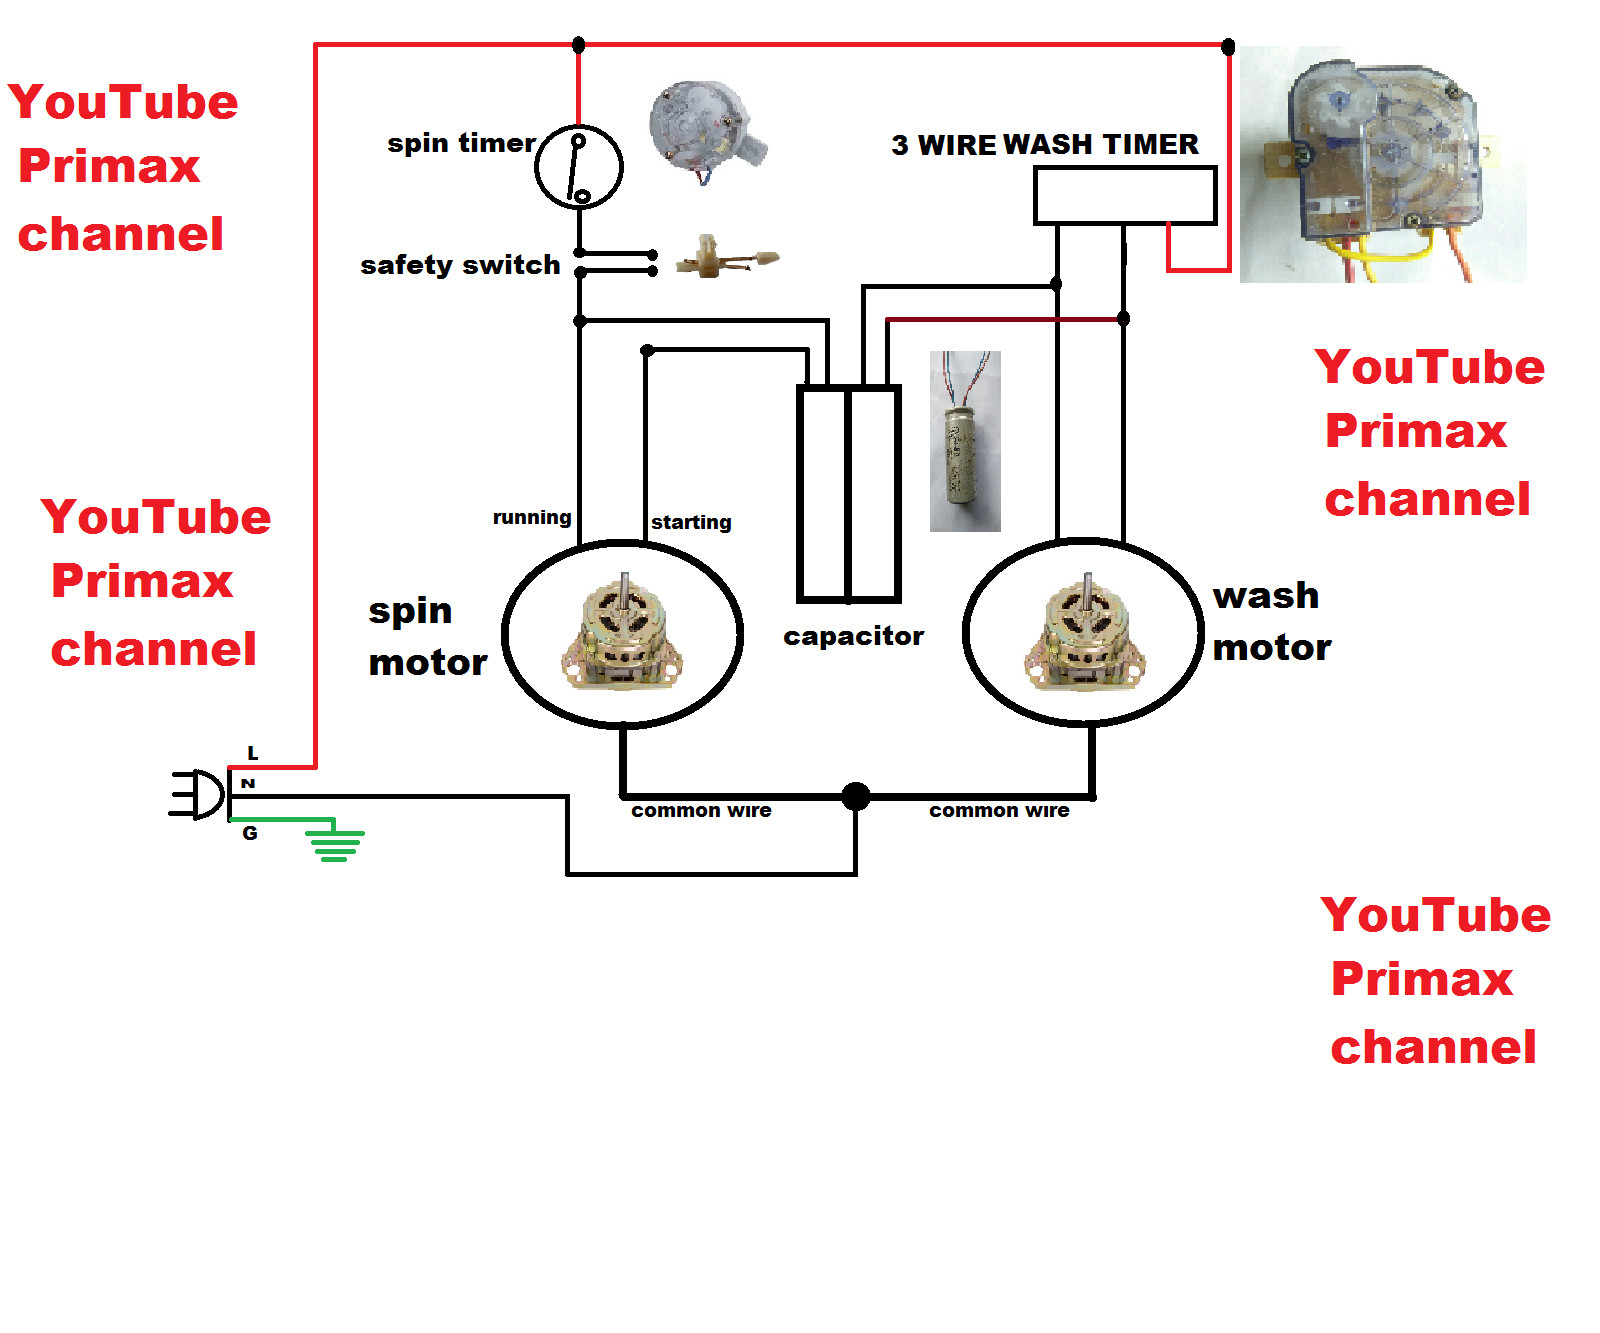 3 wire washing machine motor wiring diagram Collection-3 Wier Timer Diagram Connection Simple Washing Machine Wiring Tearing 7-d